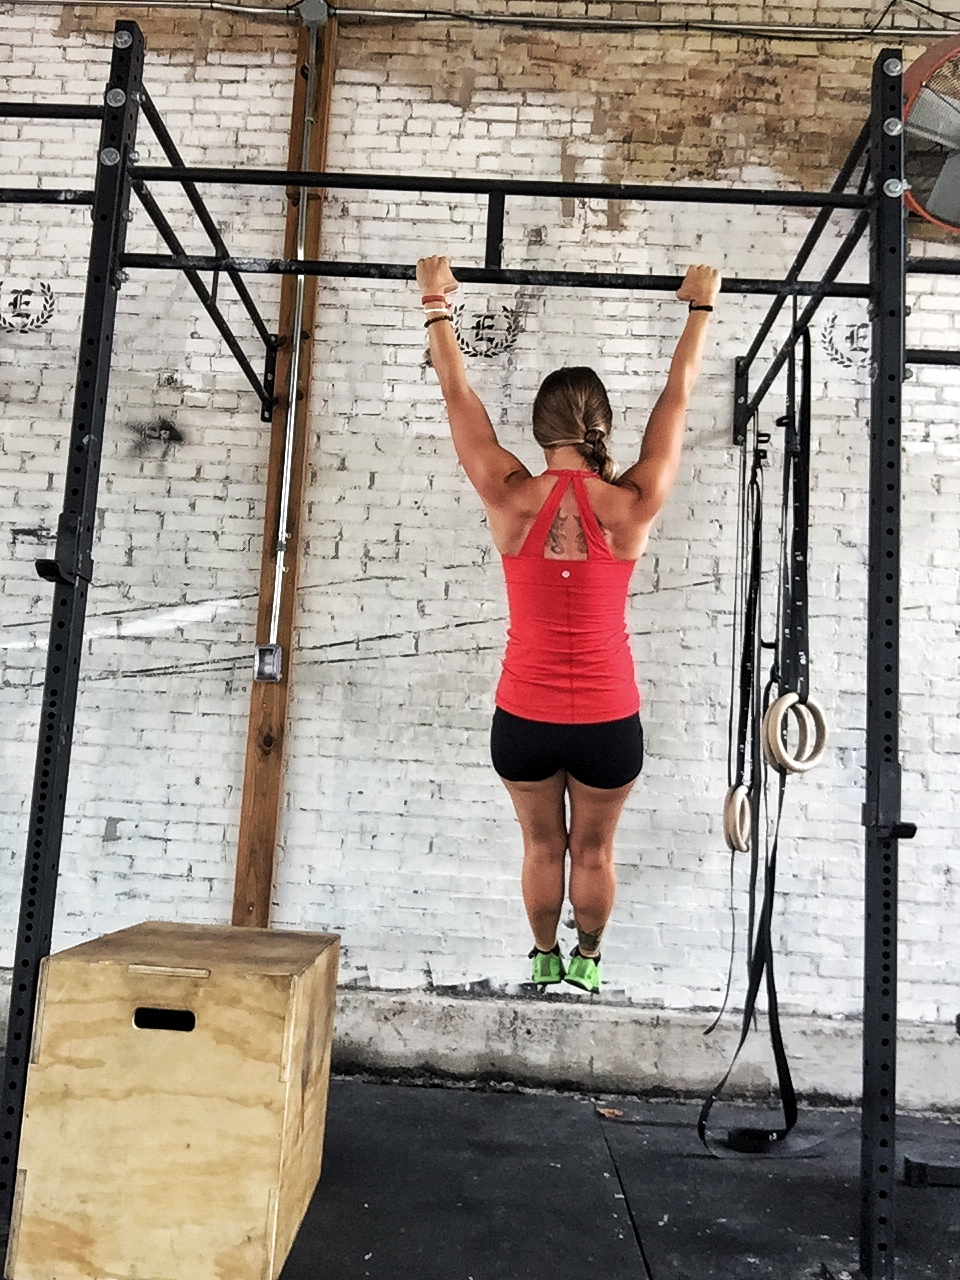 Finishing position:Dead hang, arms fully extended. -